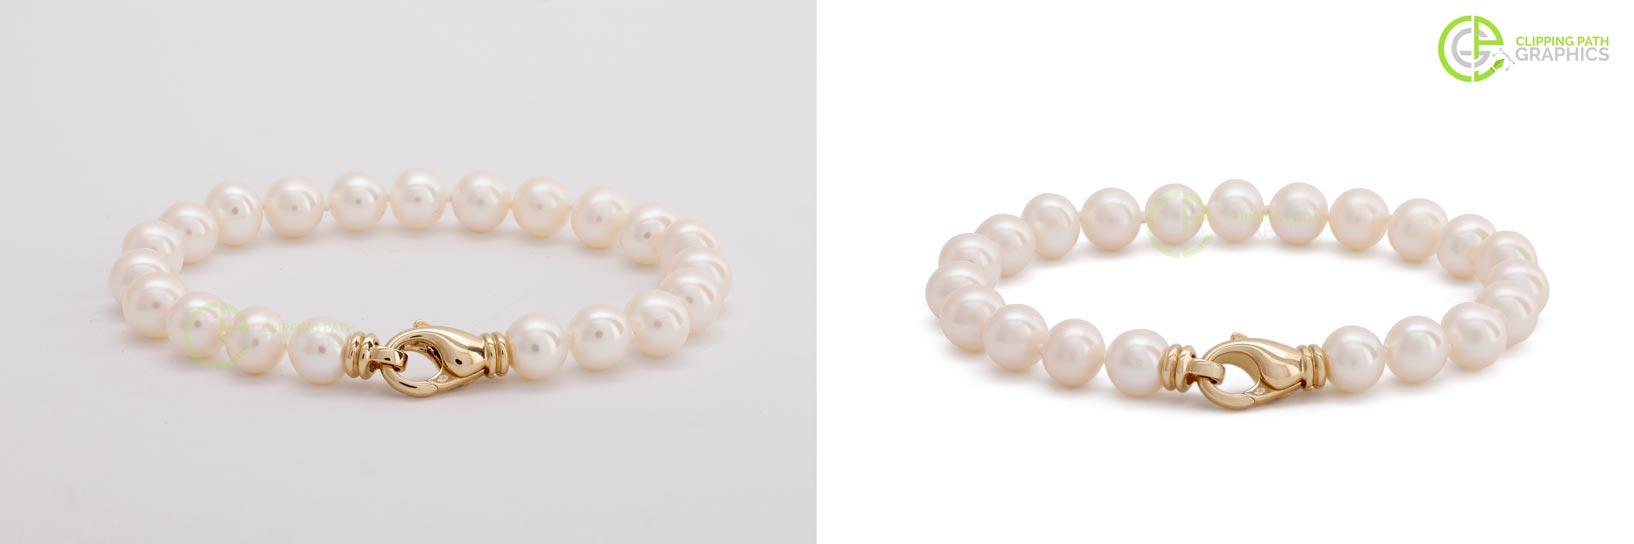 Jewelry-product-image-background-remove-service